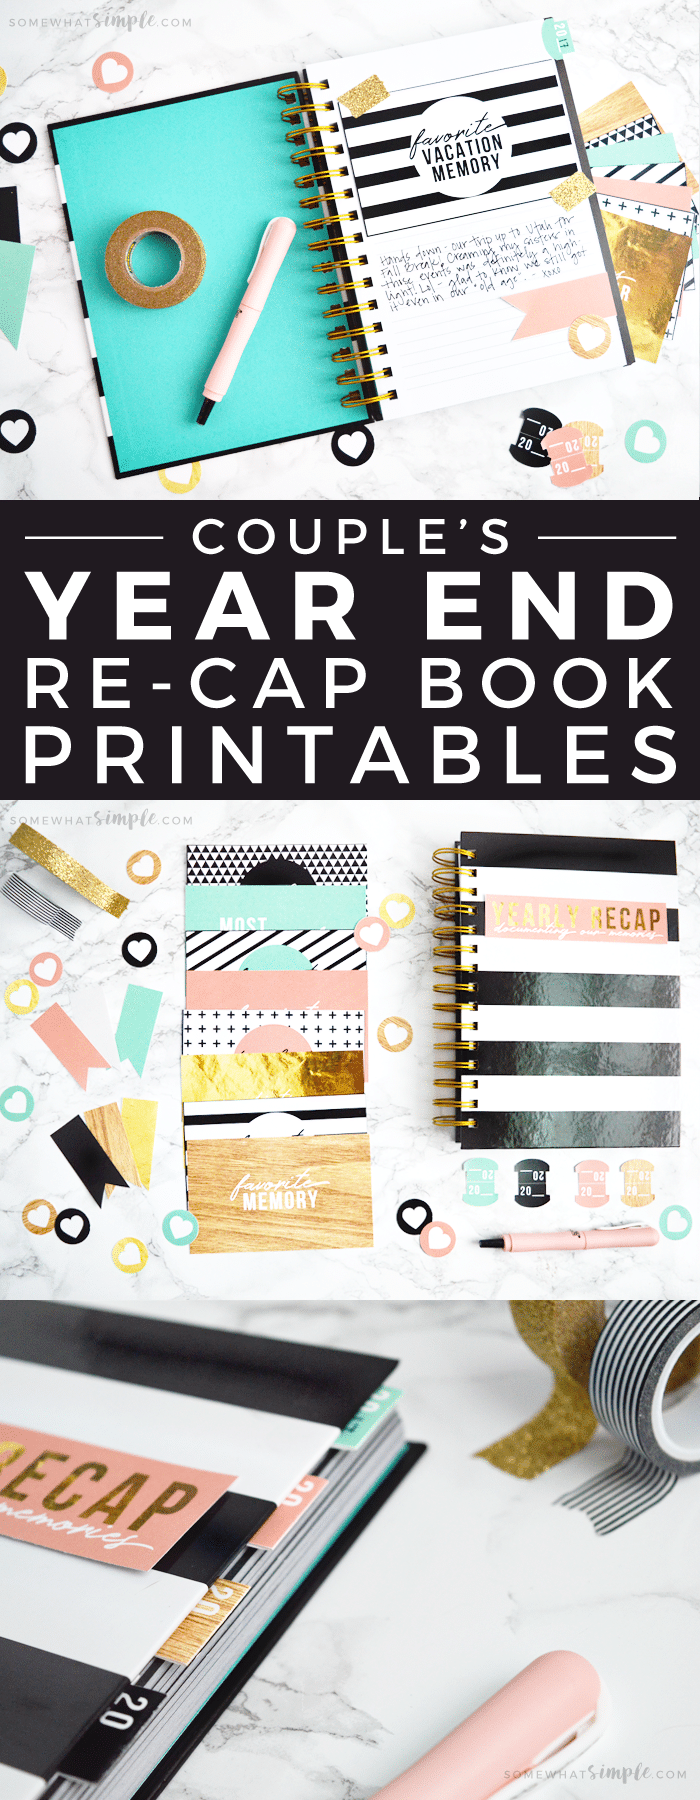 Our Couple's Memory Book + Year in Review Printables make documenting each year with your loved one fun and meaningful!